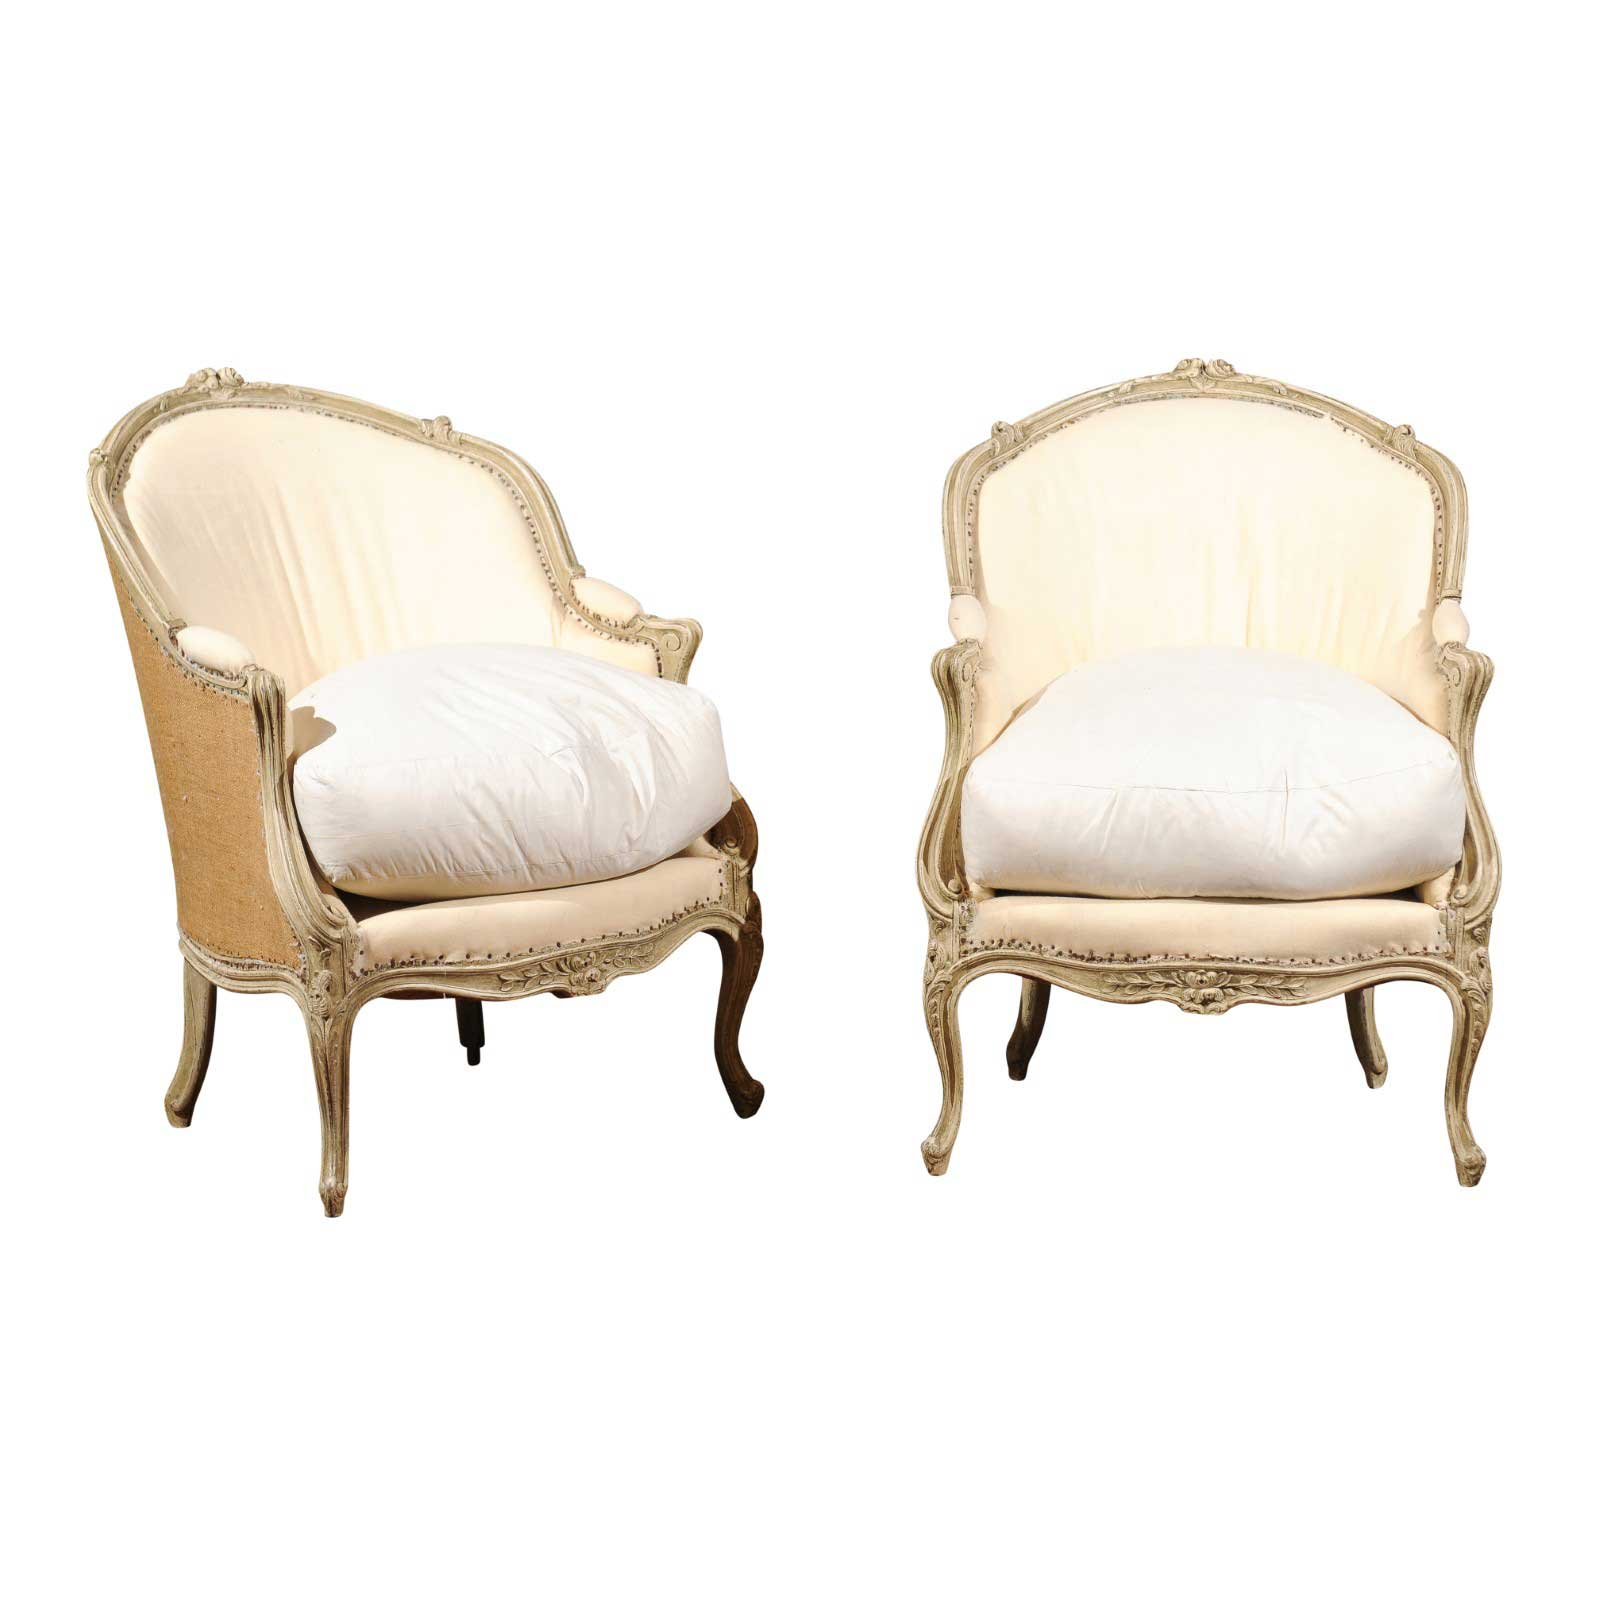 french bergere chair how much does a gaming weight pair of 18th century louis xv painted chairs with wraparound back foxglove antiques galleries